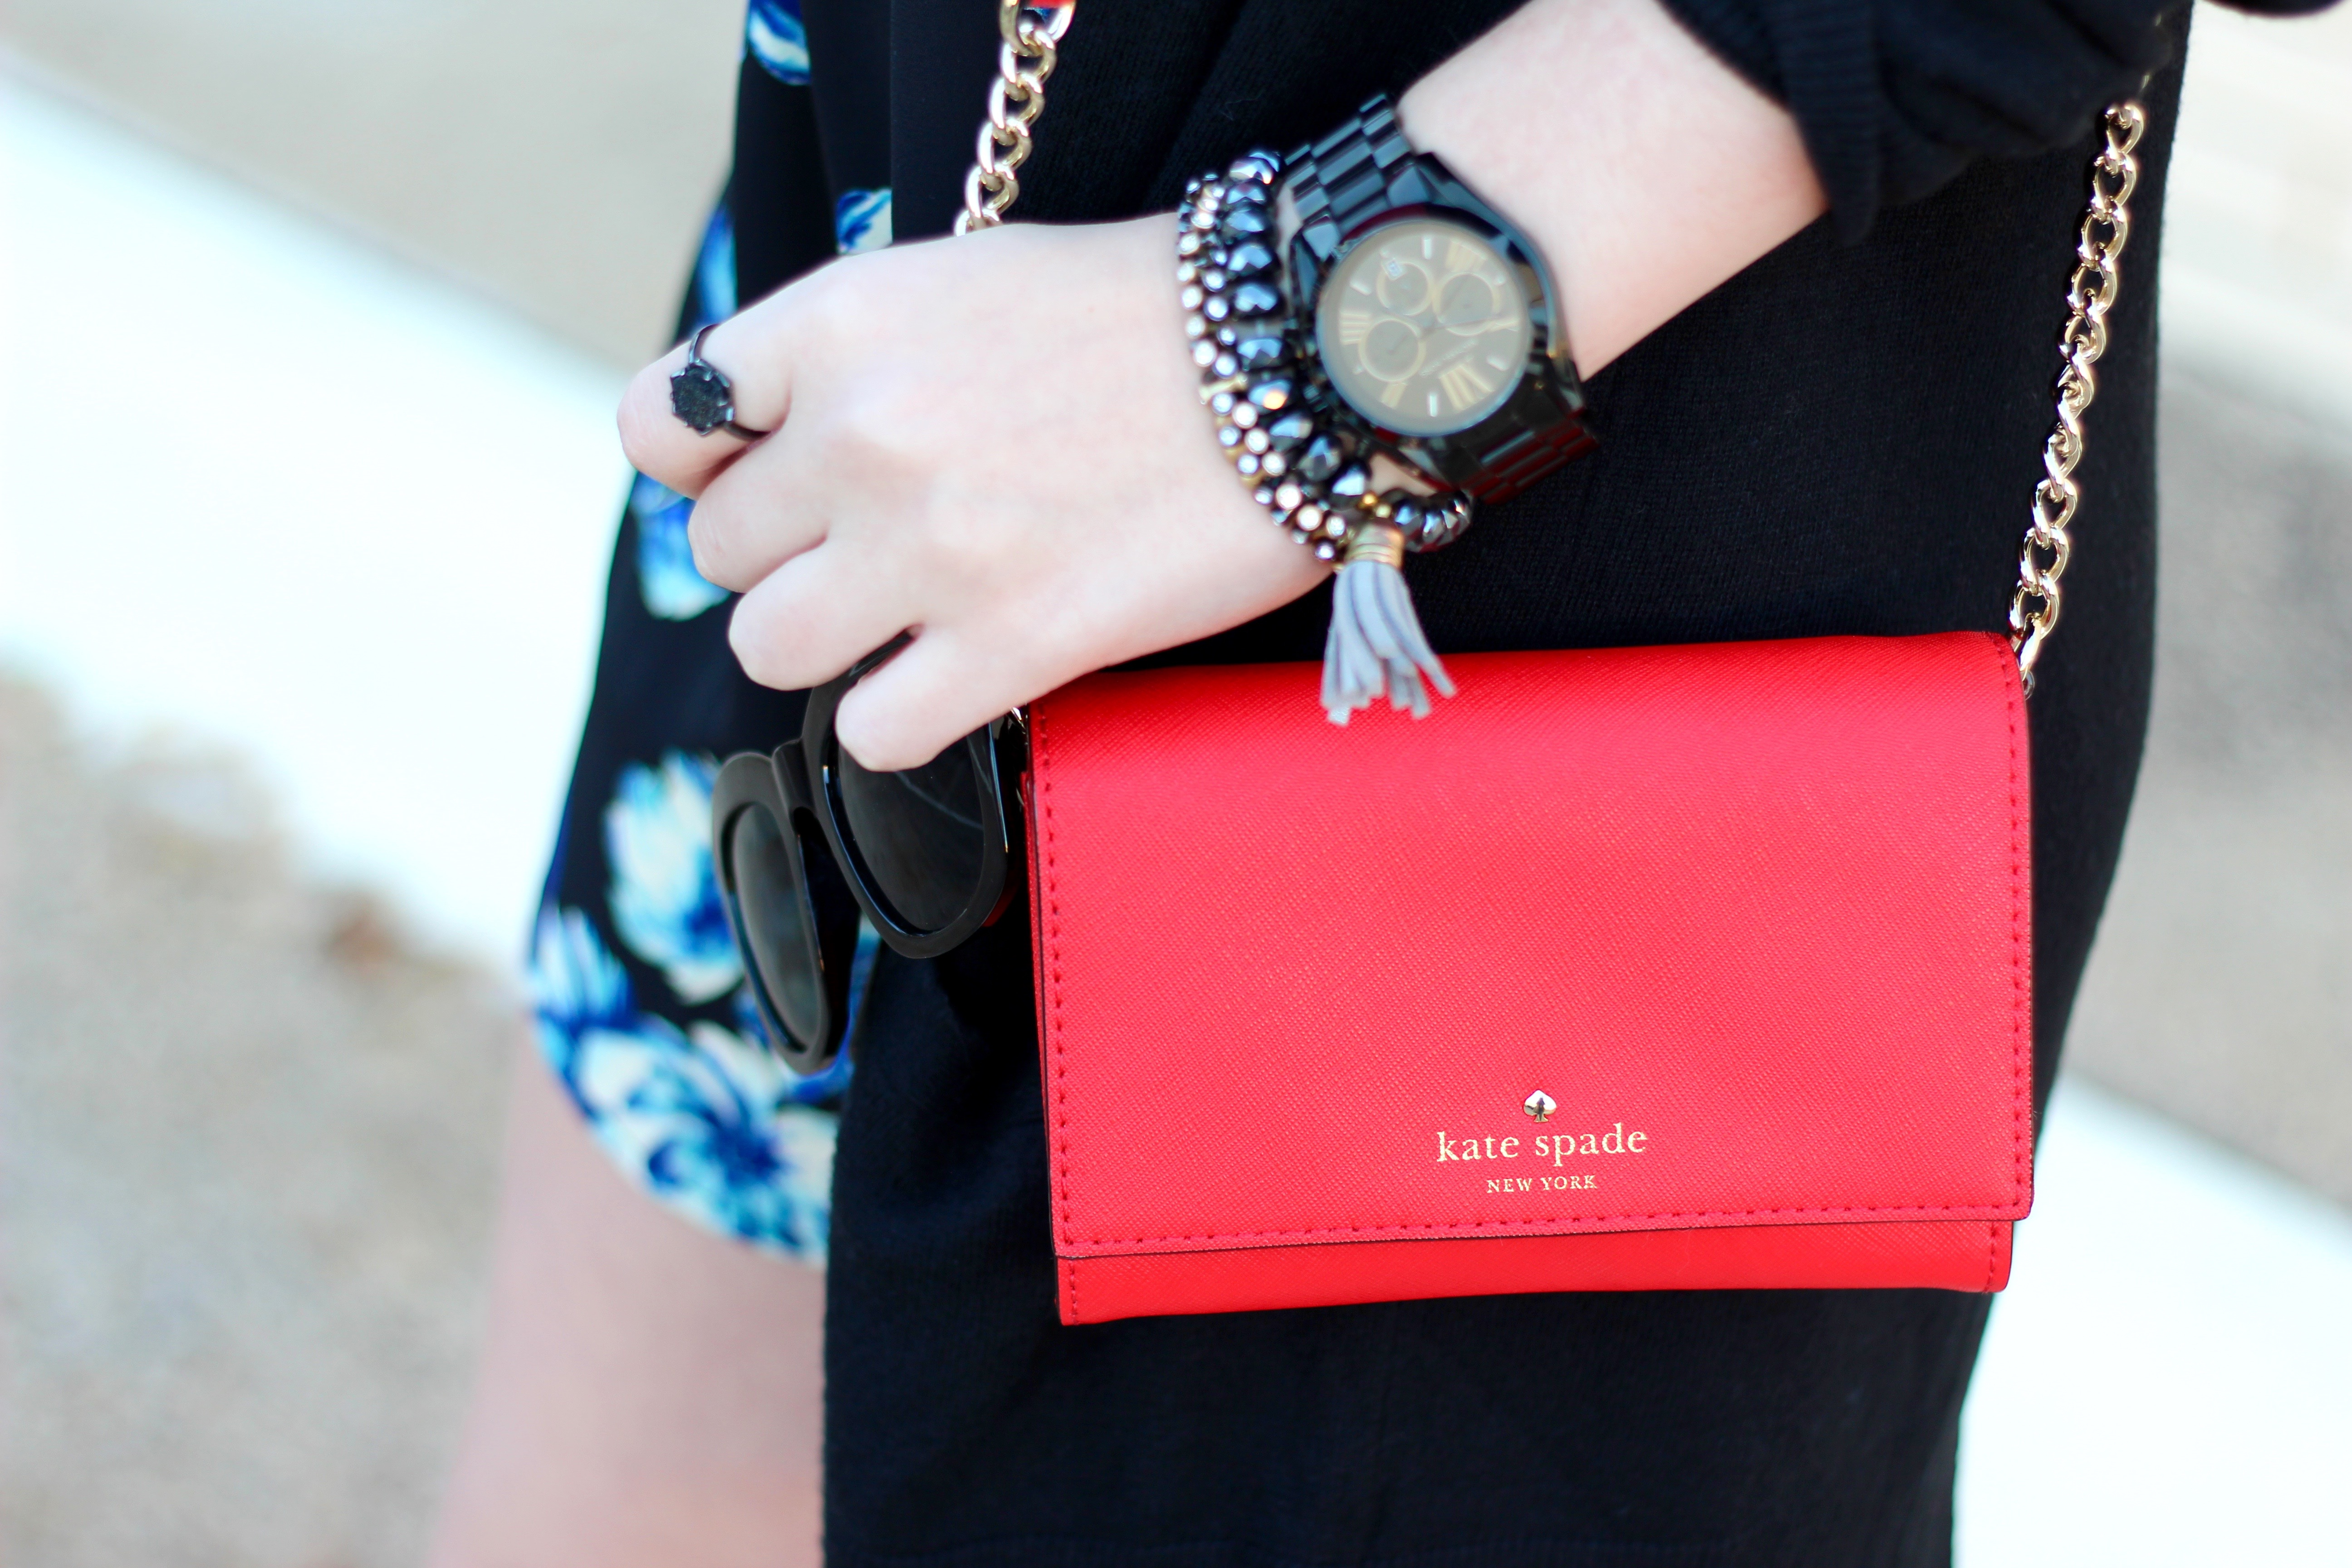 kate spade and black accessories